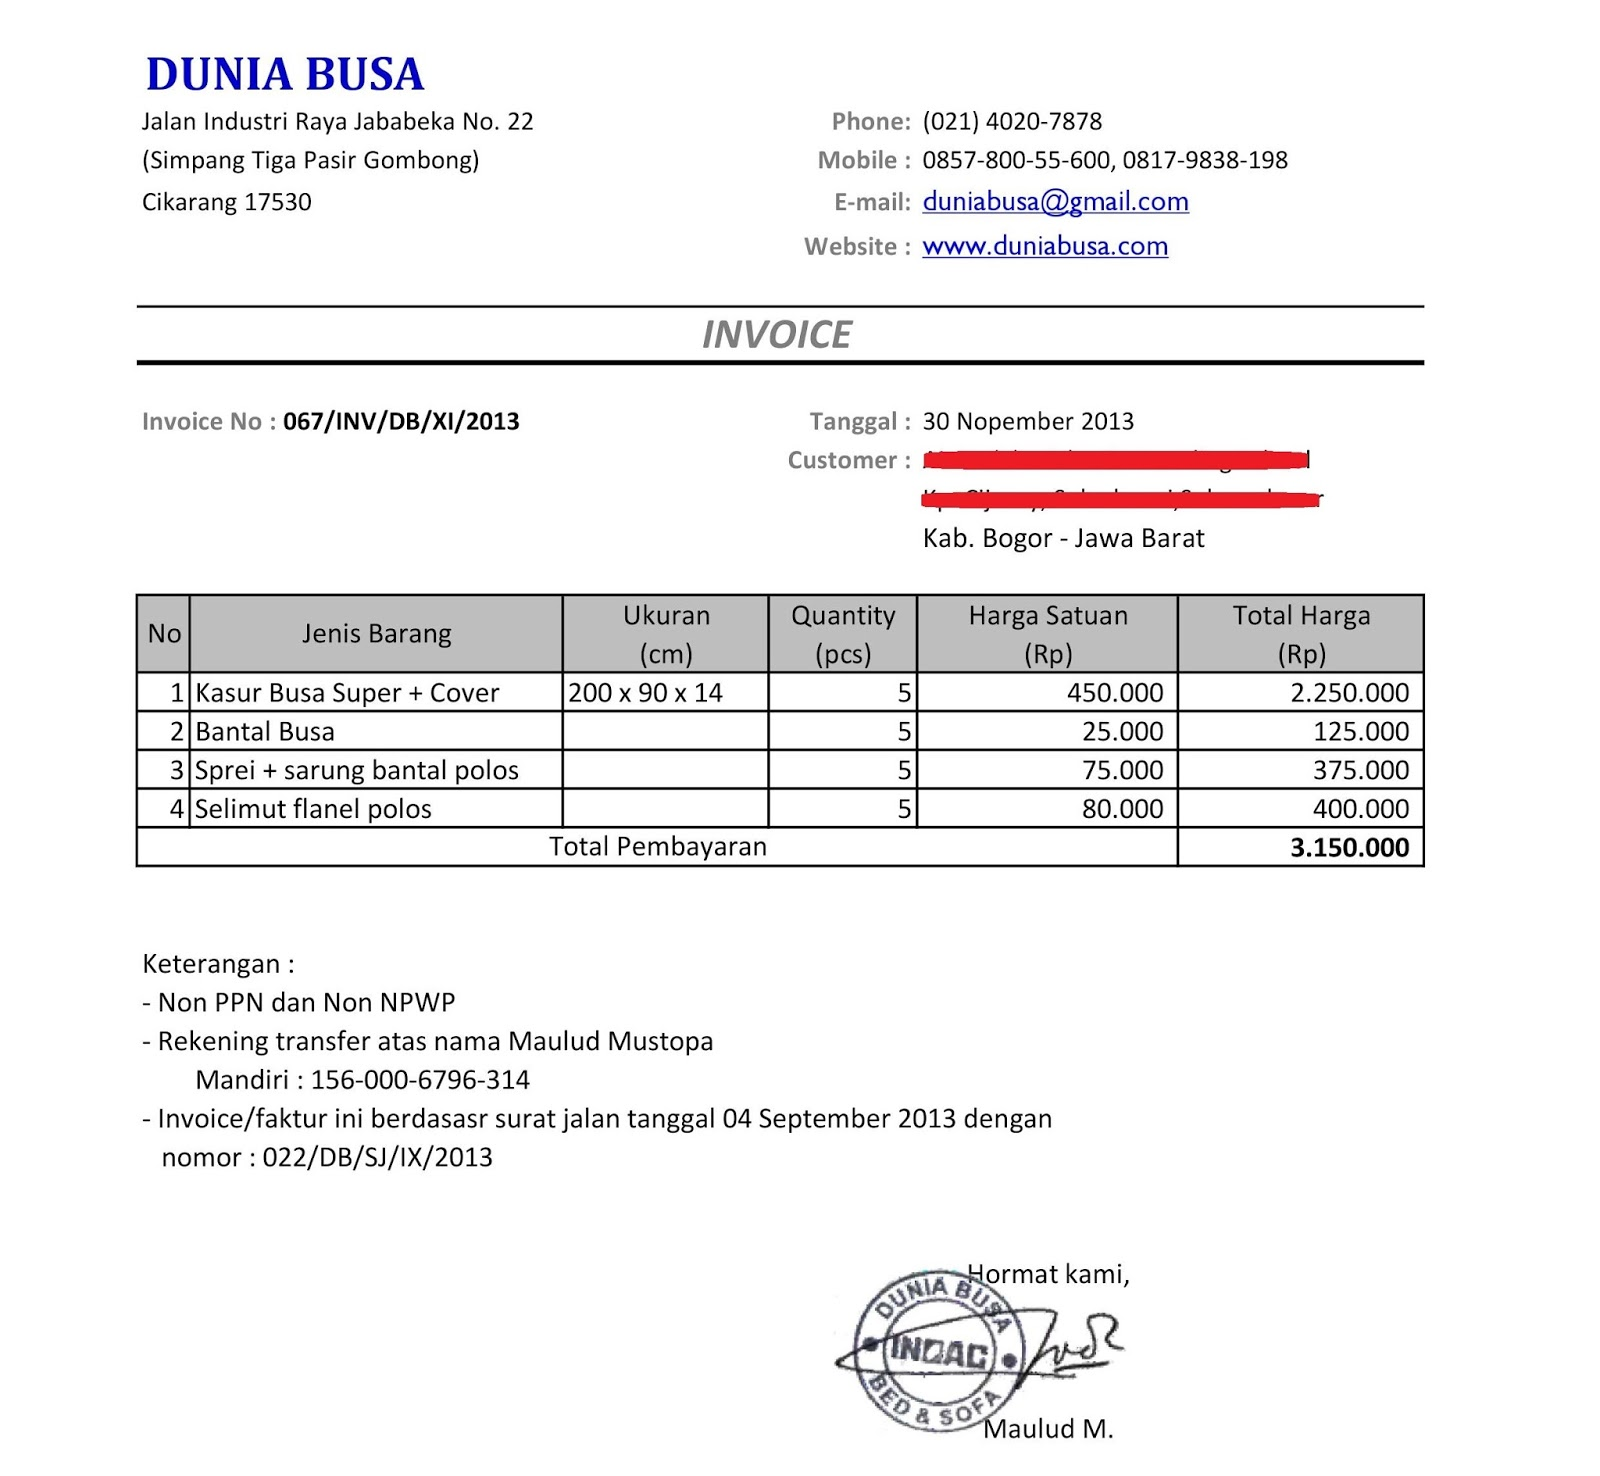 Usdgus  Prepossessing Free Invoice Online  Create Invoice Online  Invoice Template  With Heavenly Contoh Format Invoice Atau Surat Tagihan  Brankas Arsip  Free Invoice Online With Divine Create Cash Receipt Also Kfc Store Number On Receipt In Addition Where To Buy Receipt Book And Saks Return Without Receipt As Well As Walmart Gift Receipt Policy Additionally How To Make A Donation Receipt From Sklepco With Usdgus  Heavenly Free Invoice Online  Create Invoice Online  Invoice Template  With Divine Contoh Format Invoice Atau Surat Tagihan  Brankas Arsip  Free Invoice Online And Prepossessing Create Cash Receipt Also Kfc Store Number On Receipt In Addition Where To Buy Receipt Book From Sklepco